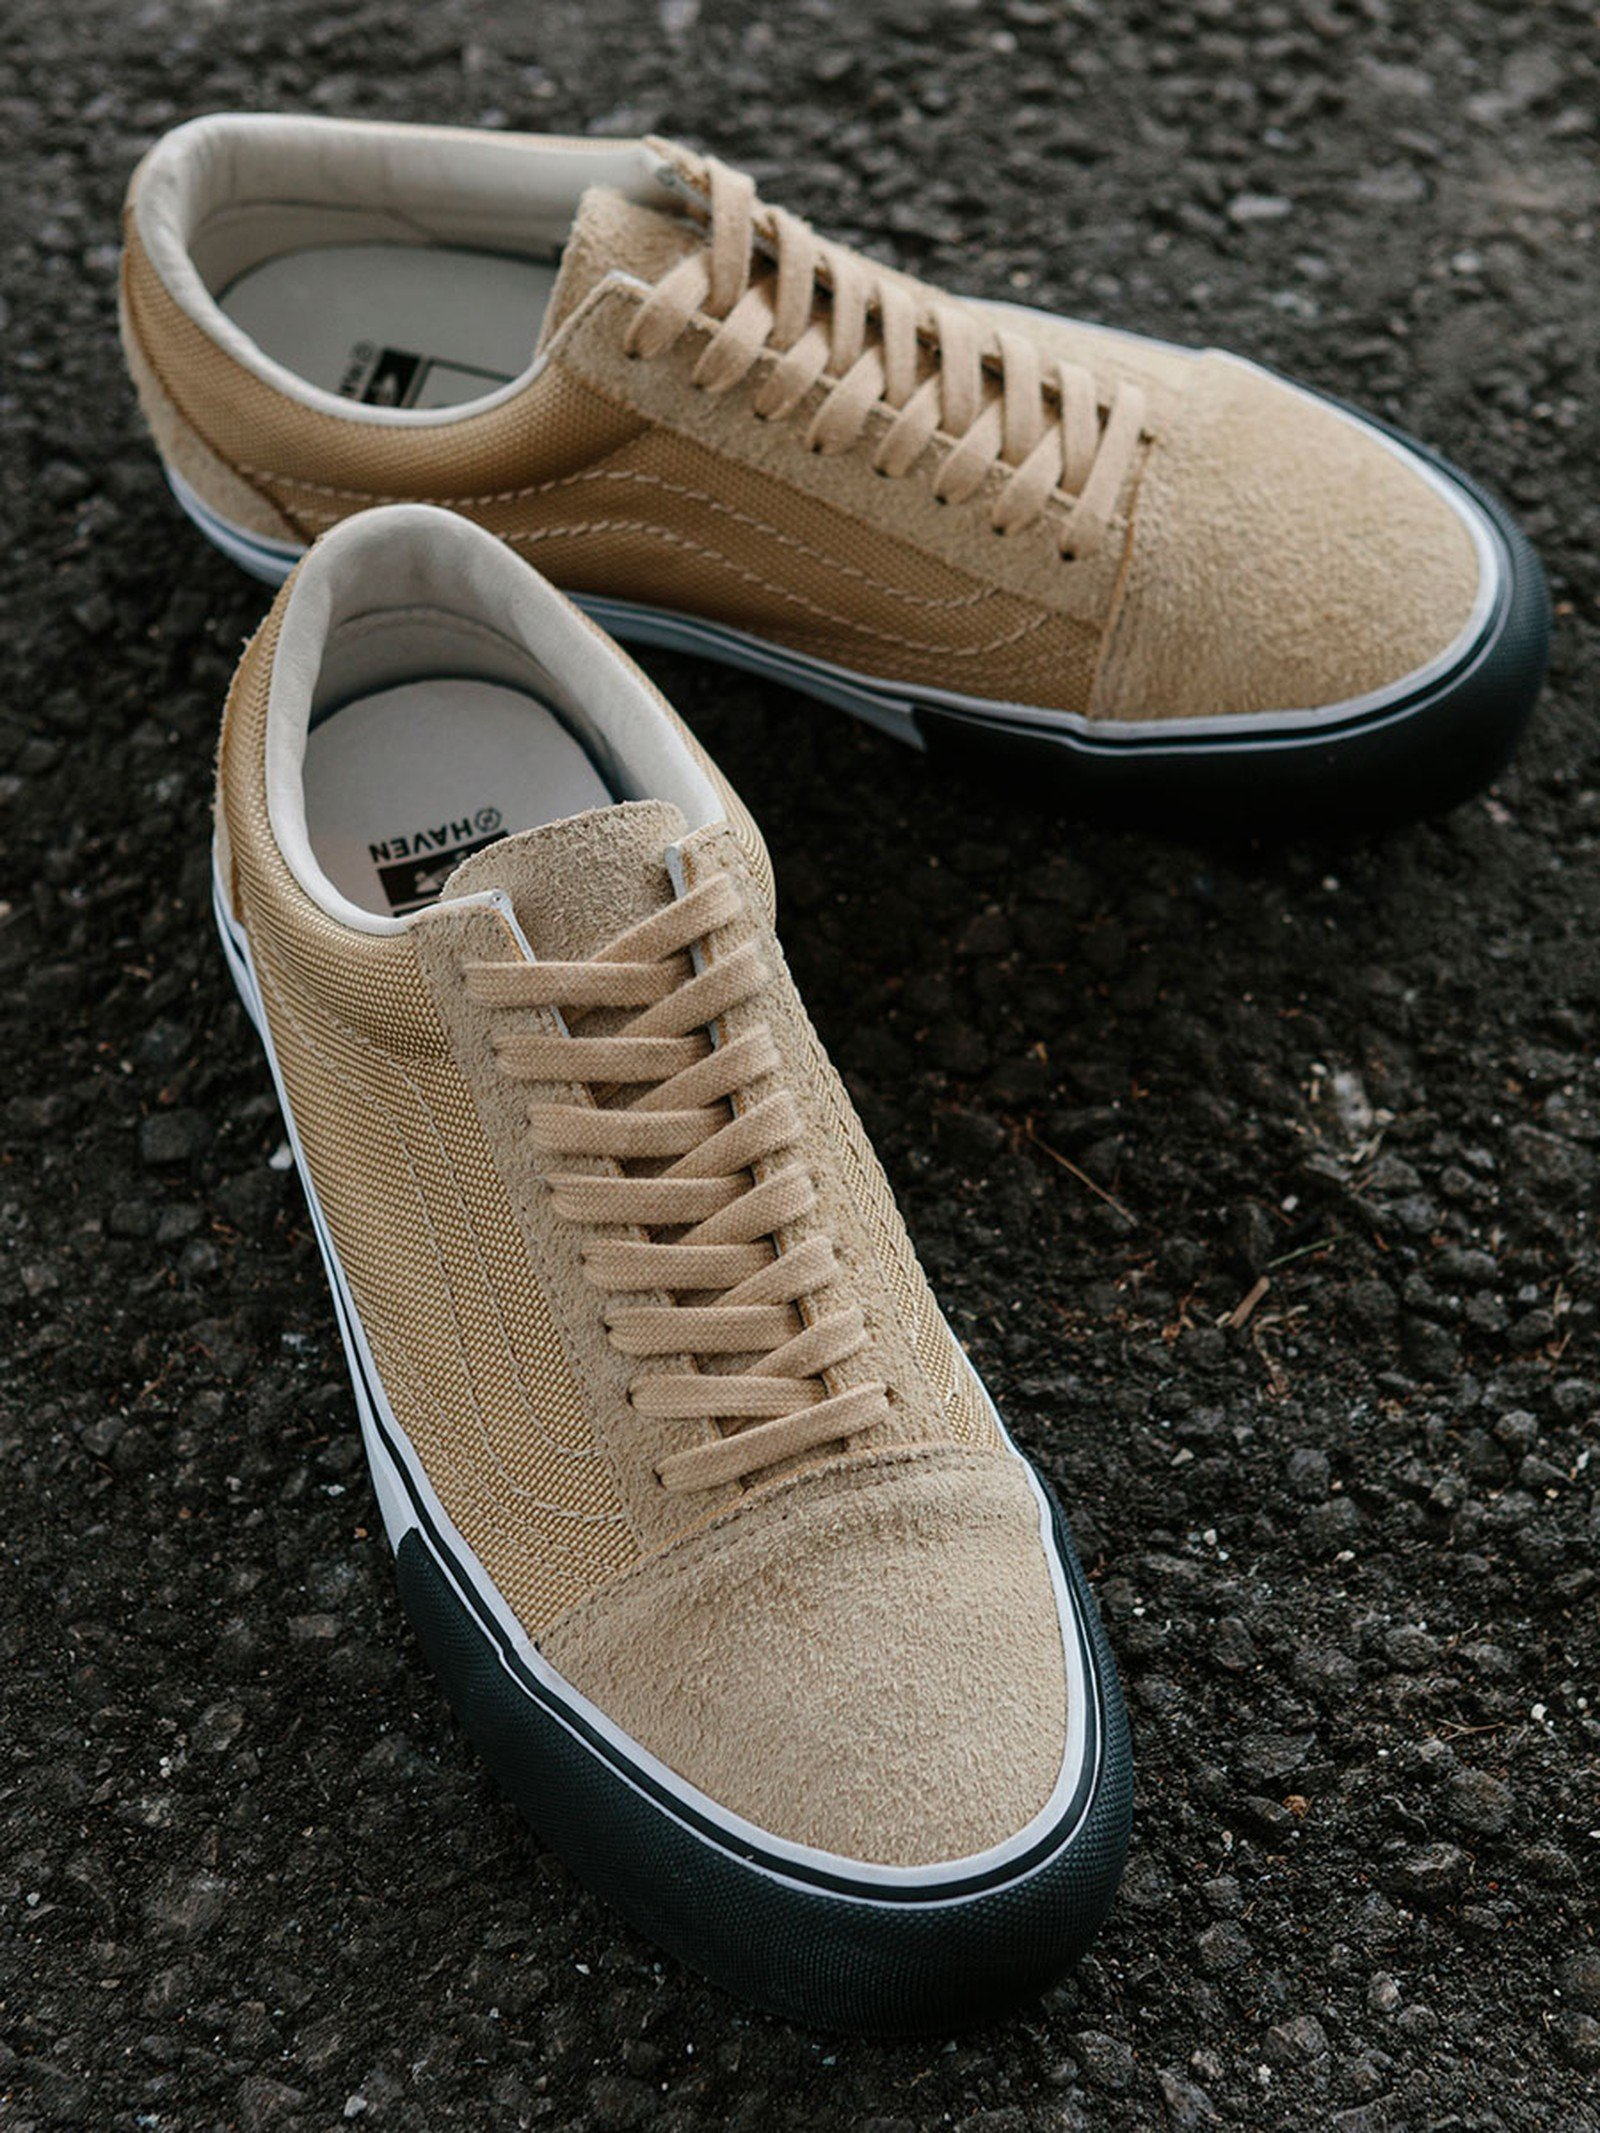 HAVEN x Vault by Vans' New Shoes Is Perfect This Fall